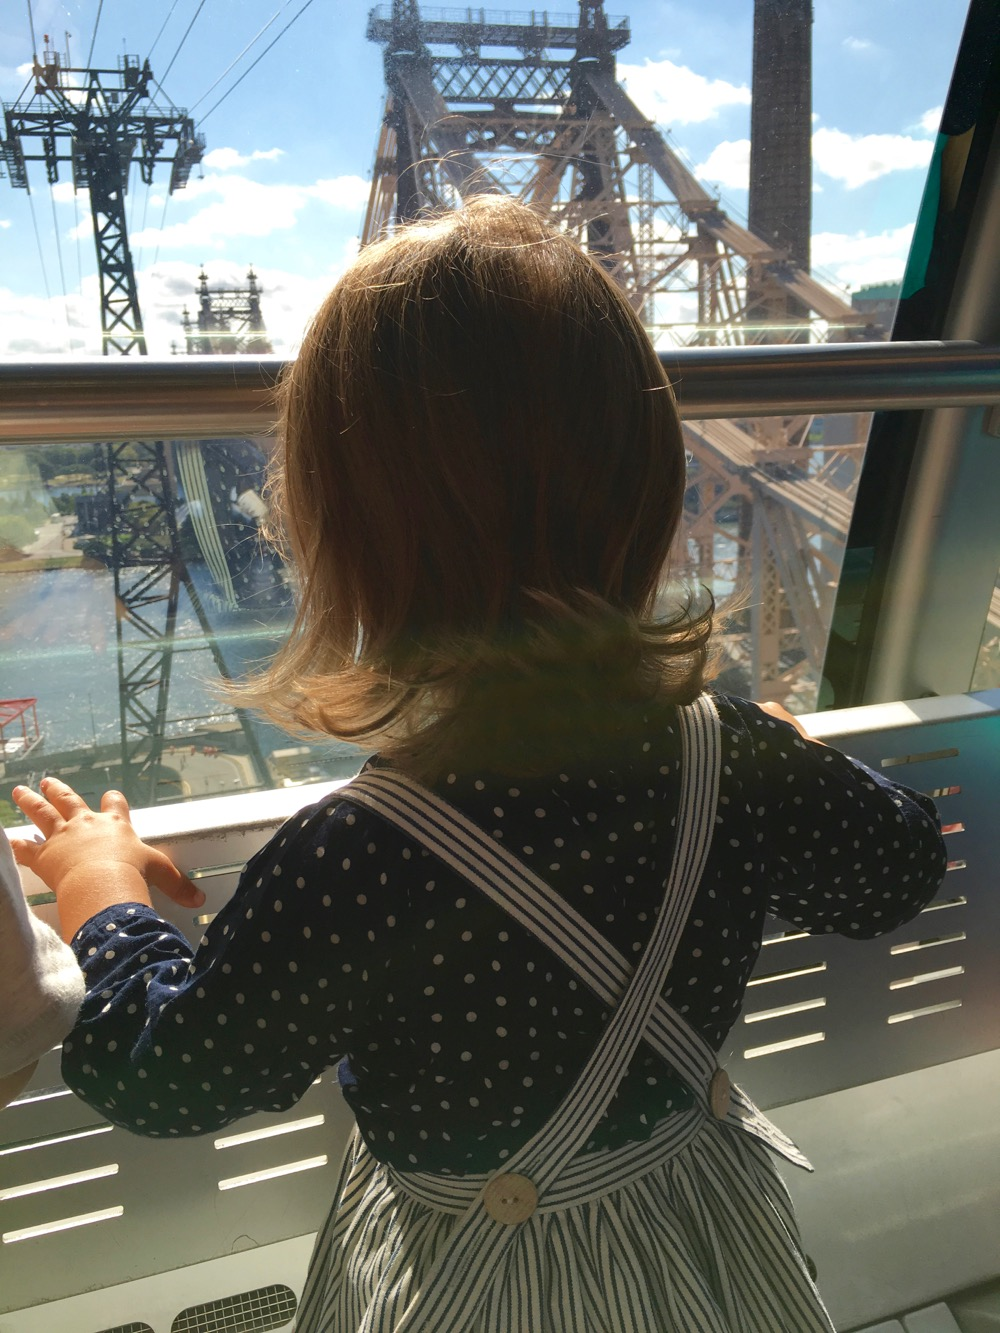 Roosevelt Island Tram 4 - Babyccino NYC Guide